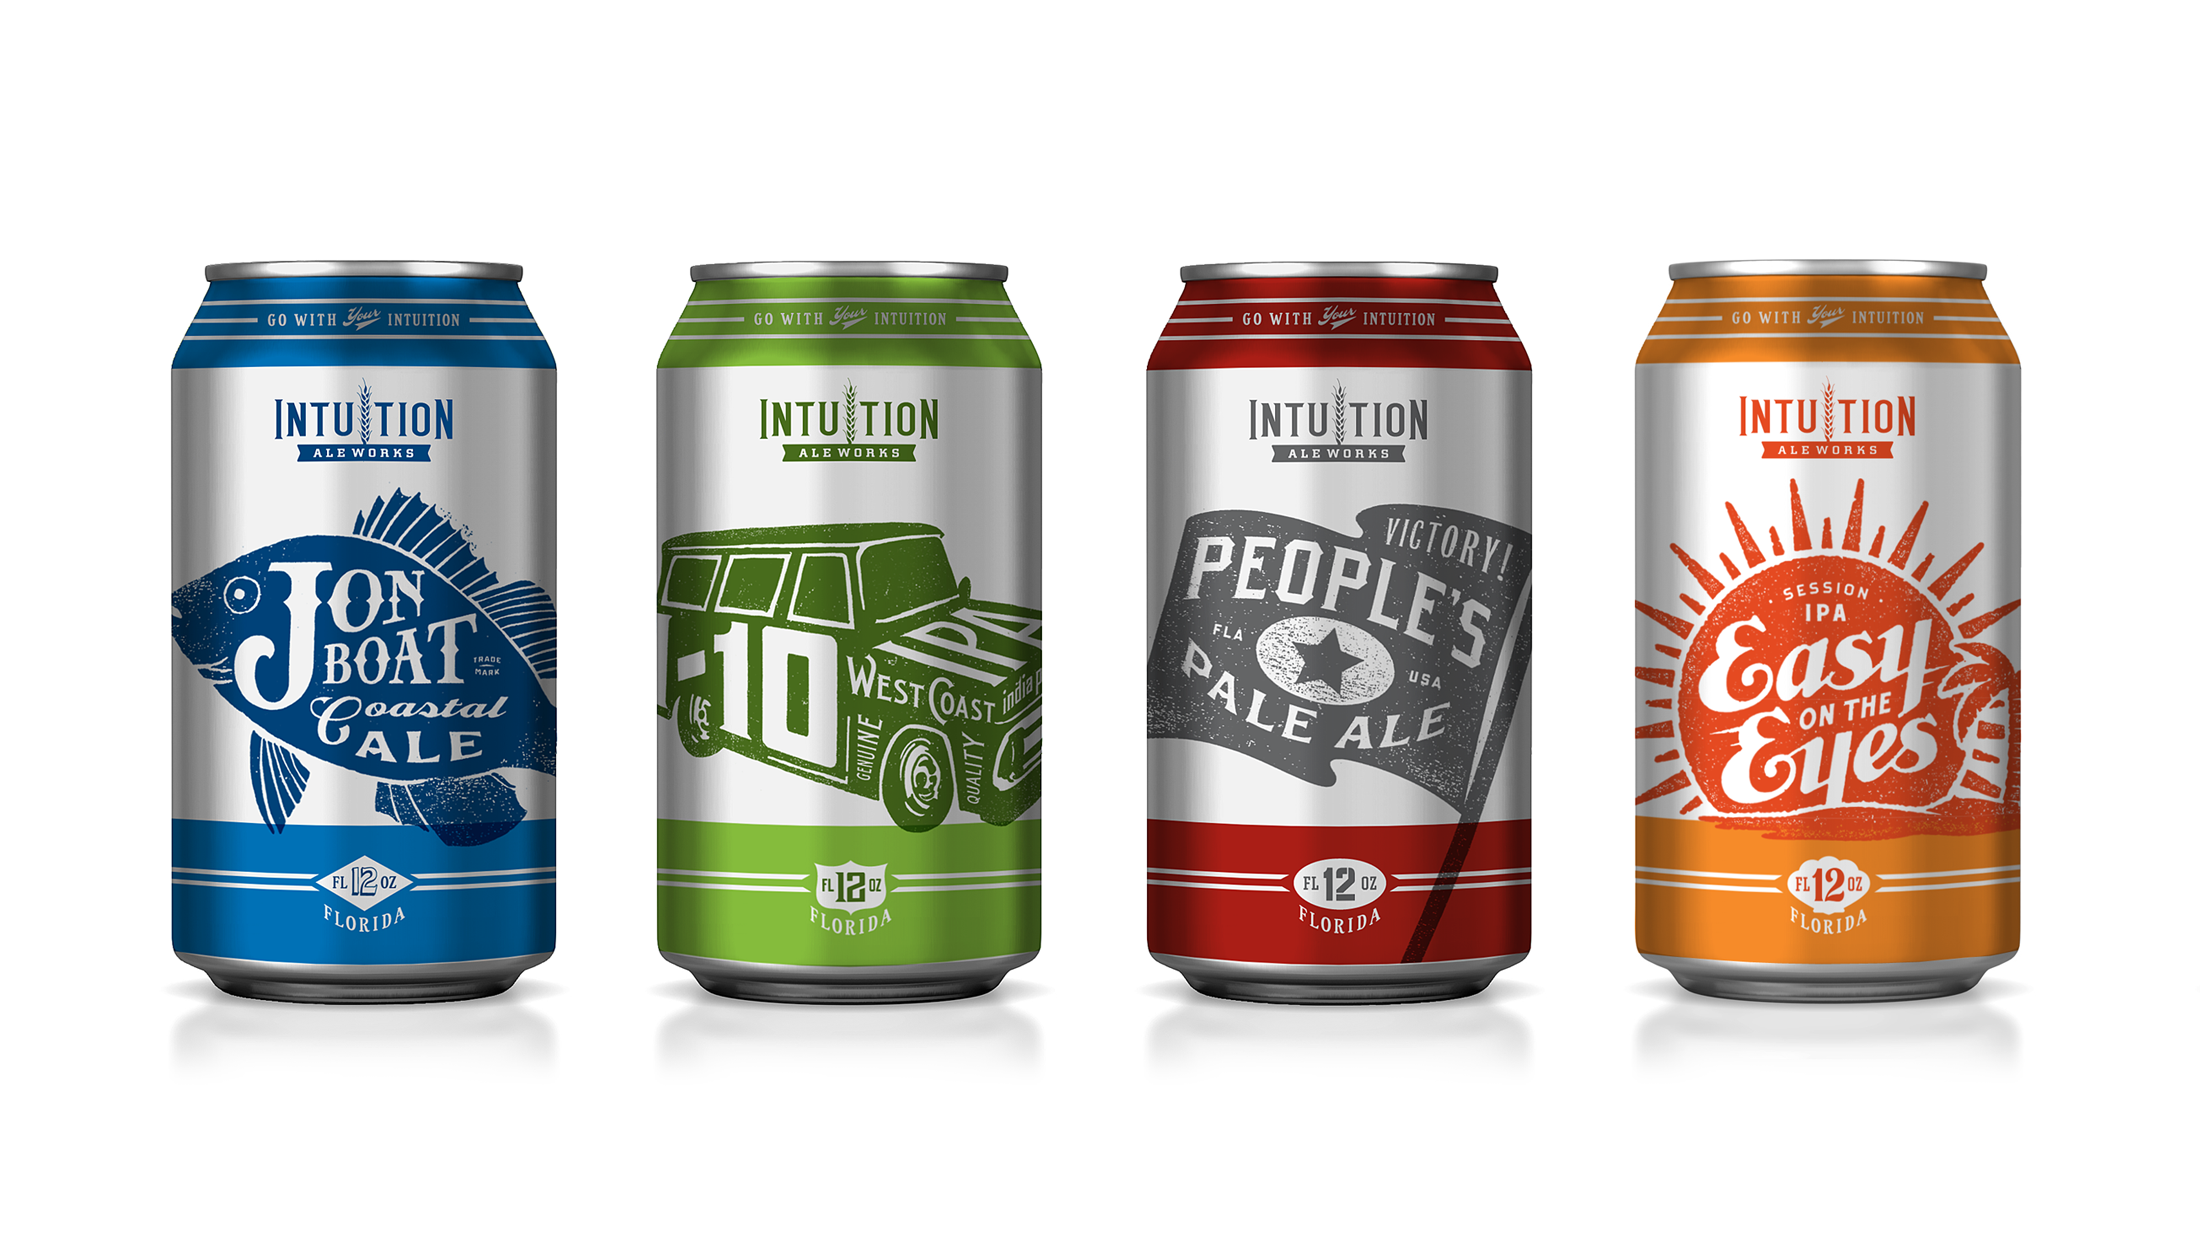 derouen_intuitionaleworks_cans